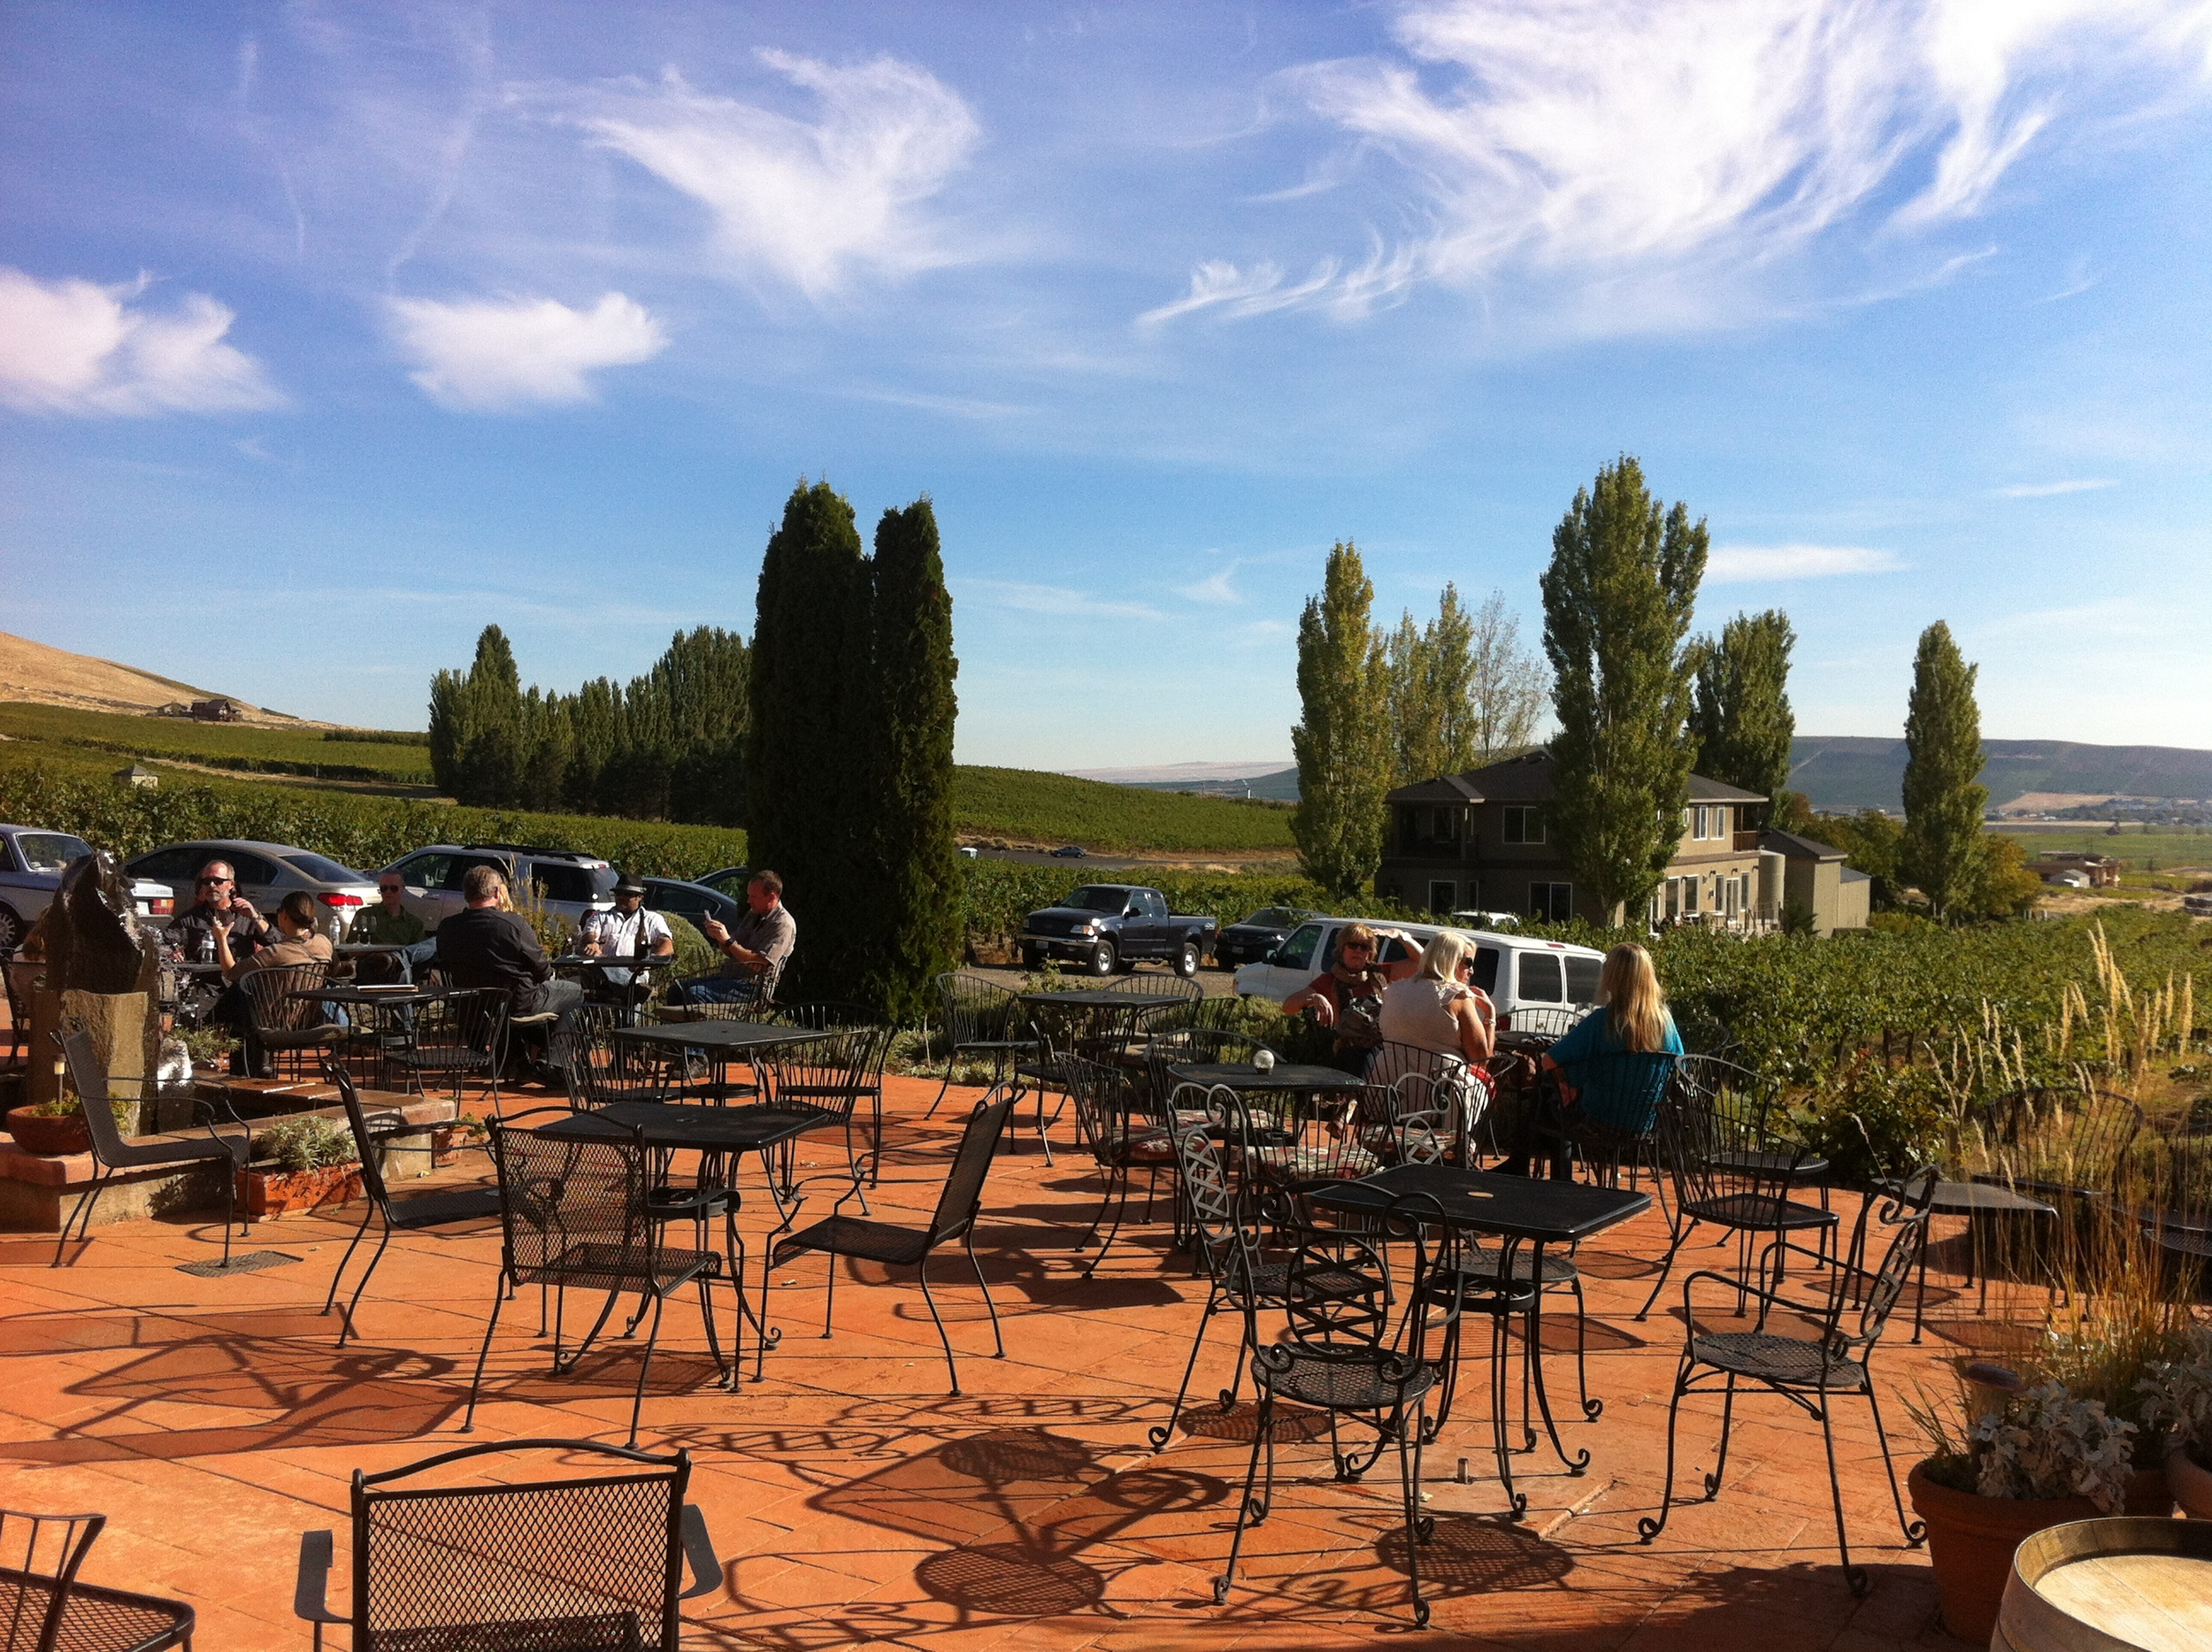 Tapteil Vineyard is almost at the end of the Red Mountain road but it is worth it for its sunny patio and sweeping views.  They also have two guest houses Spilya and Bella Luna for those who want to soak up the sun, tranquility and wine.